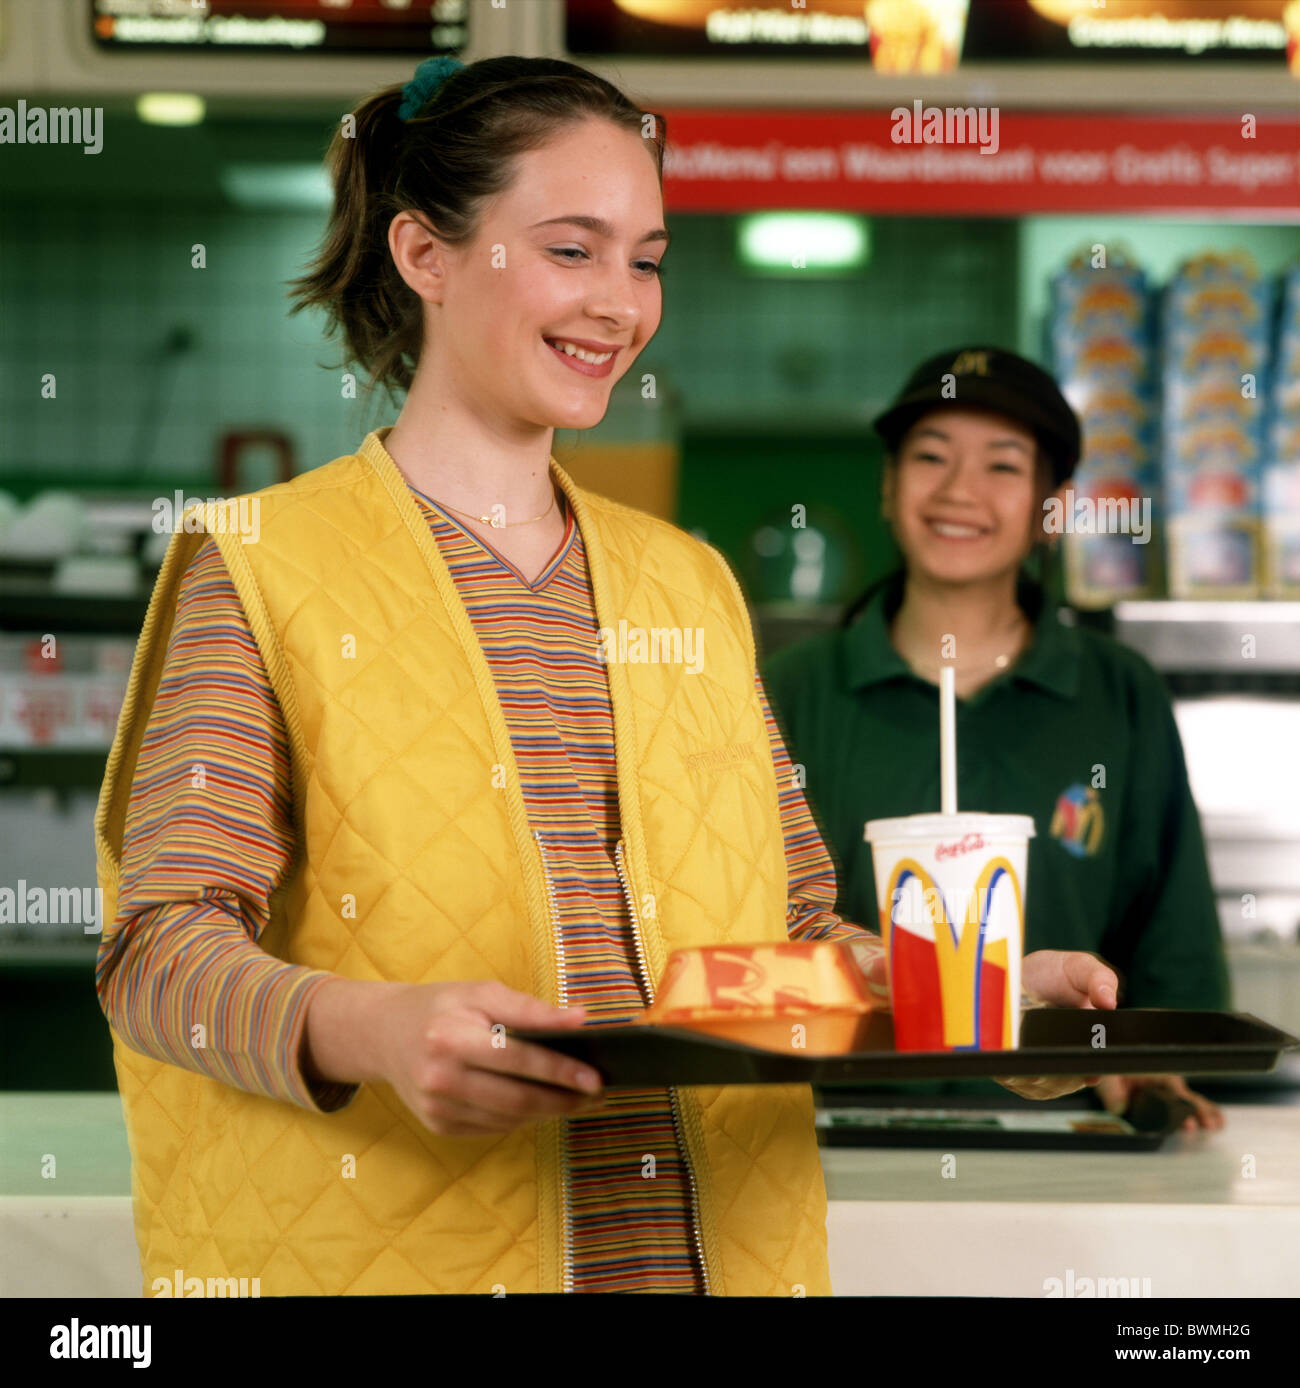 1990s : McDonalds meal in restaurant : Teenage girl carrying plate and friendly female servant in background. - Stock Image